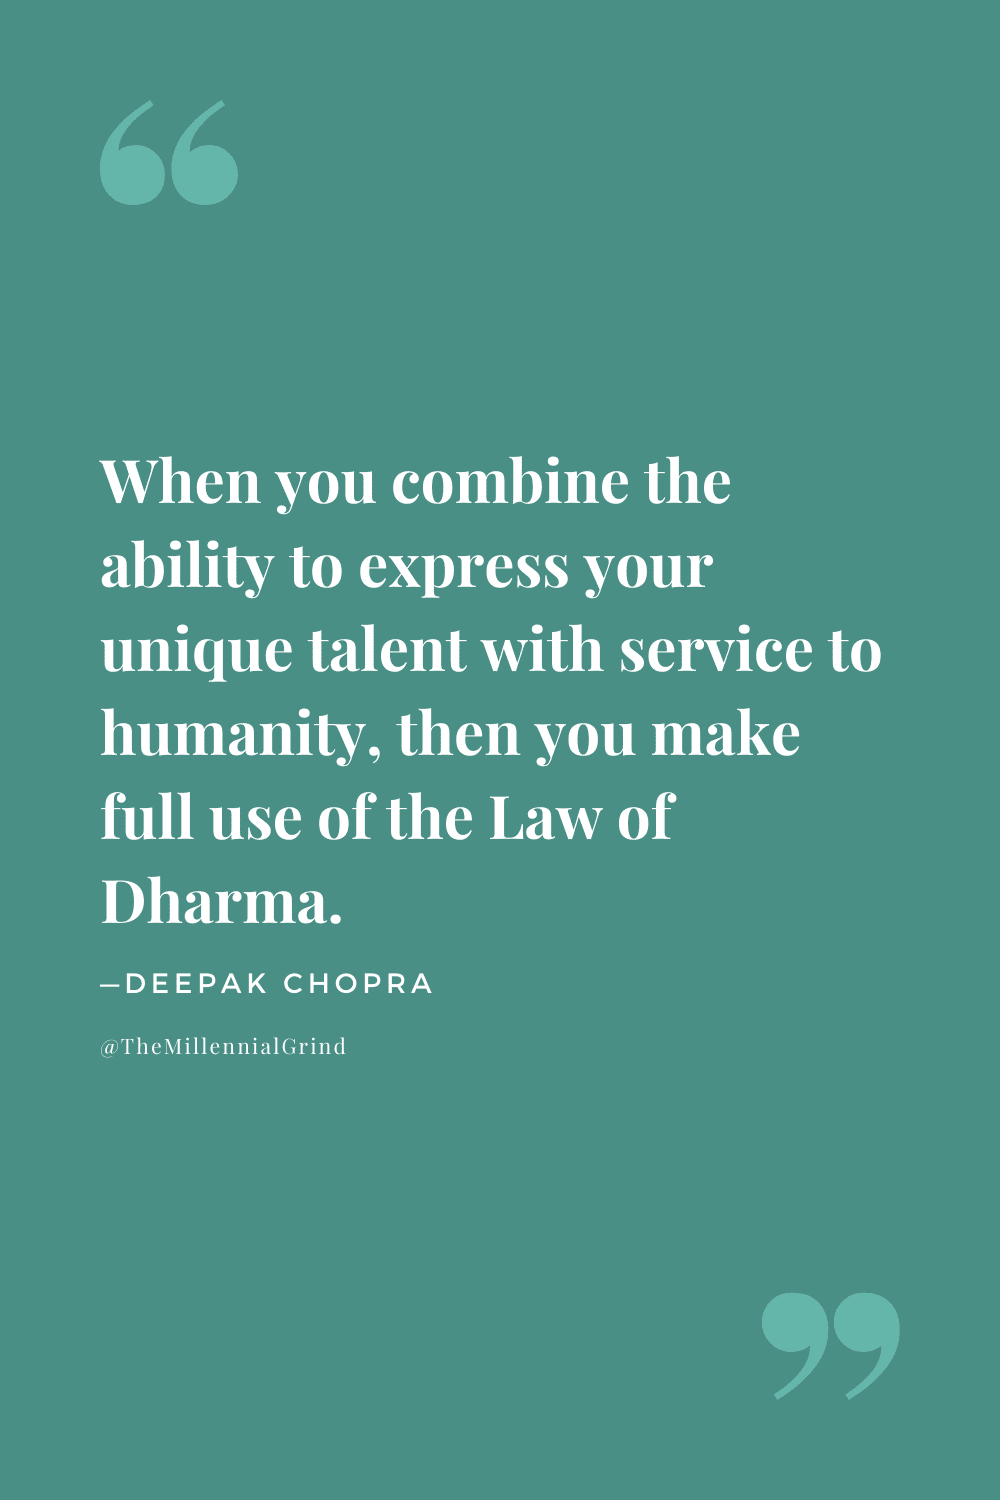 The Law of Dharma Quotes